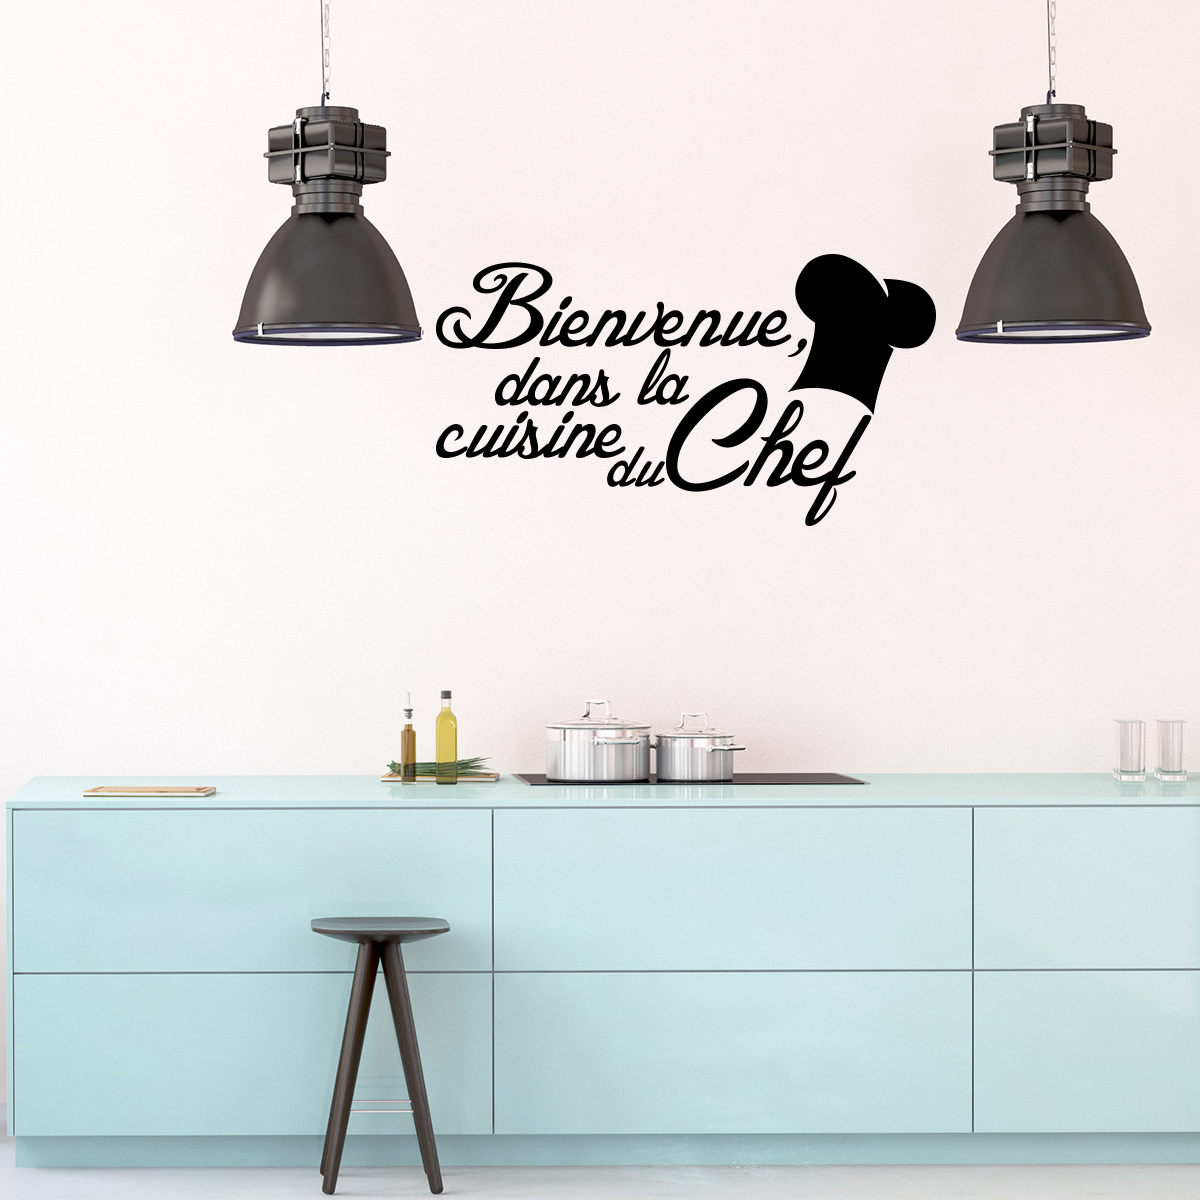 sticker citation cuisine bienvenue dans la cuisine du chef stickers citations fran ais. Black Bedroom Furniture Sets. Home Design Ideas